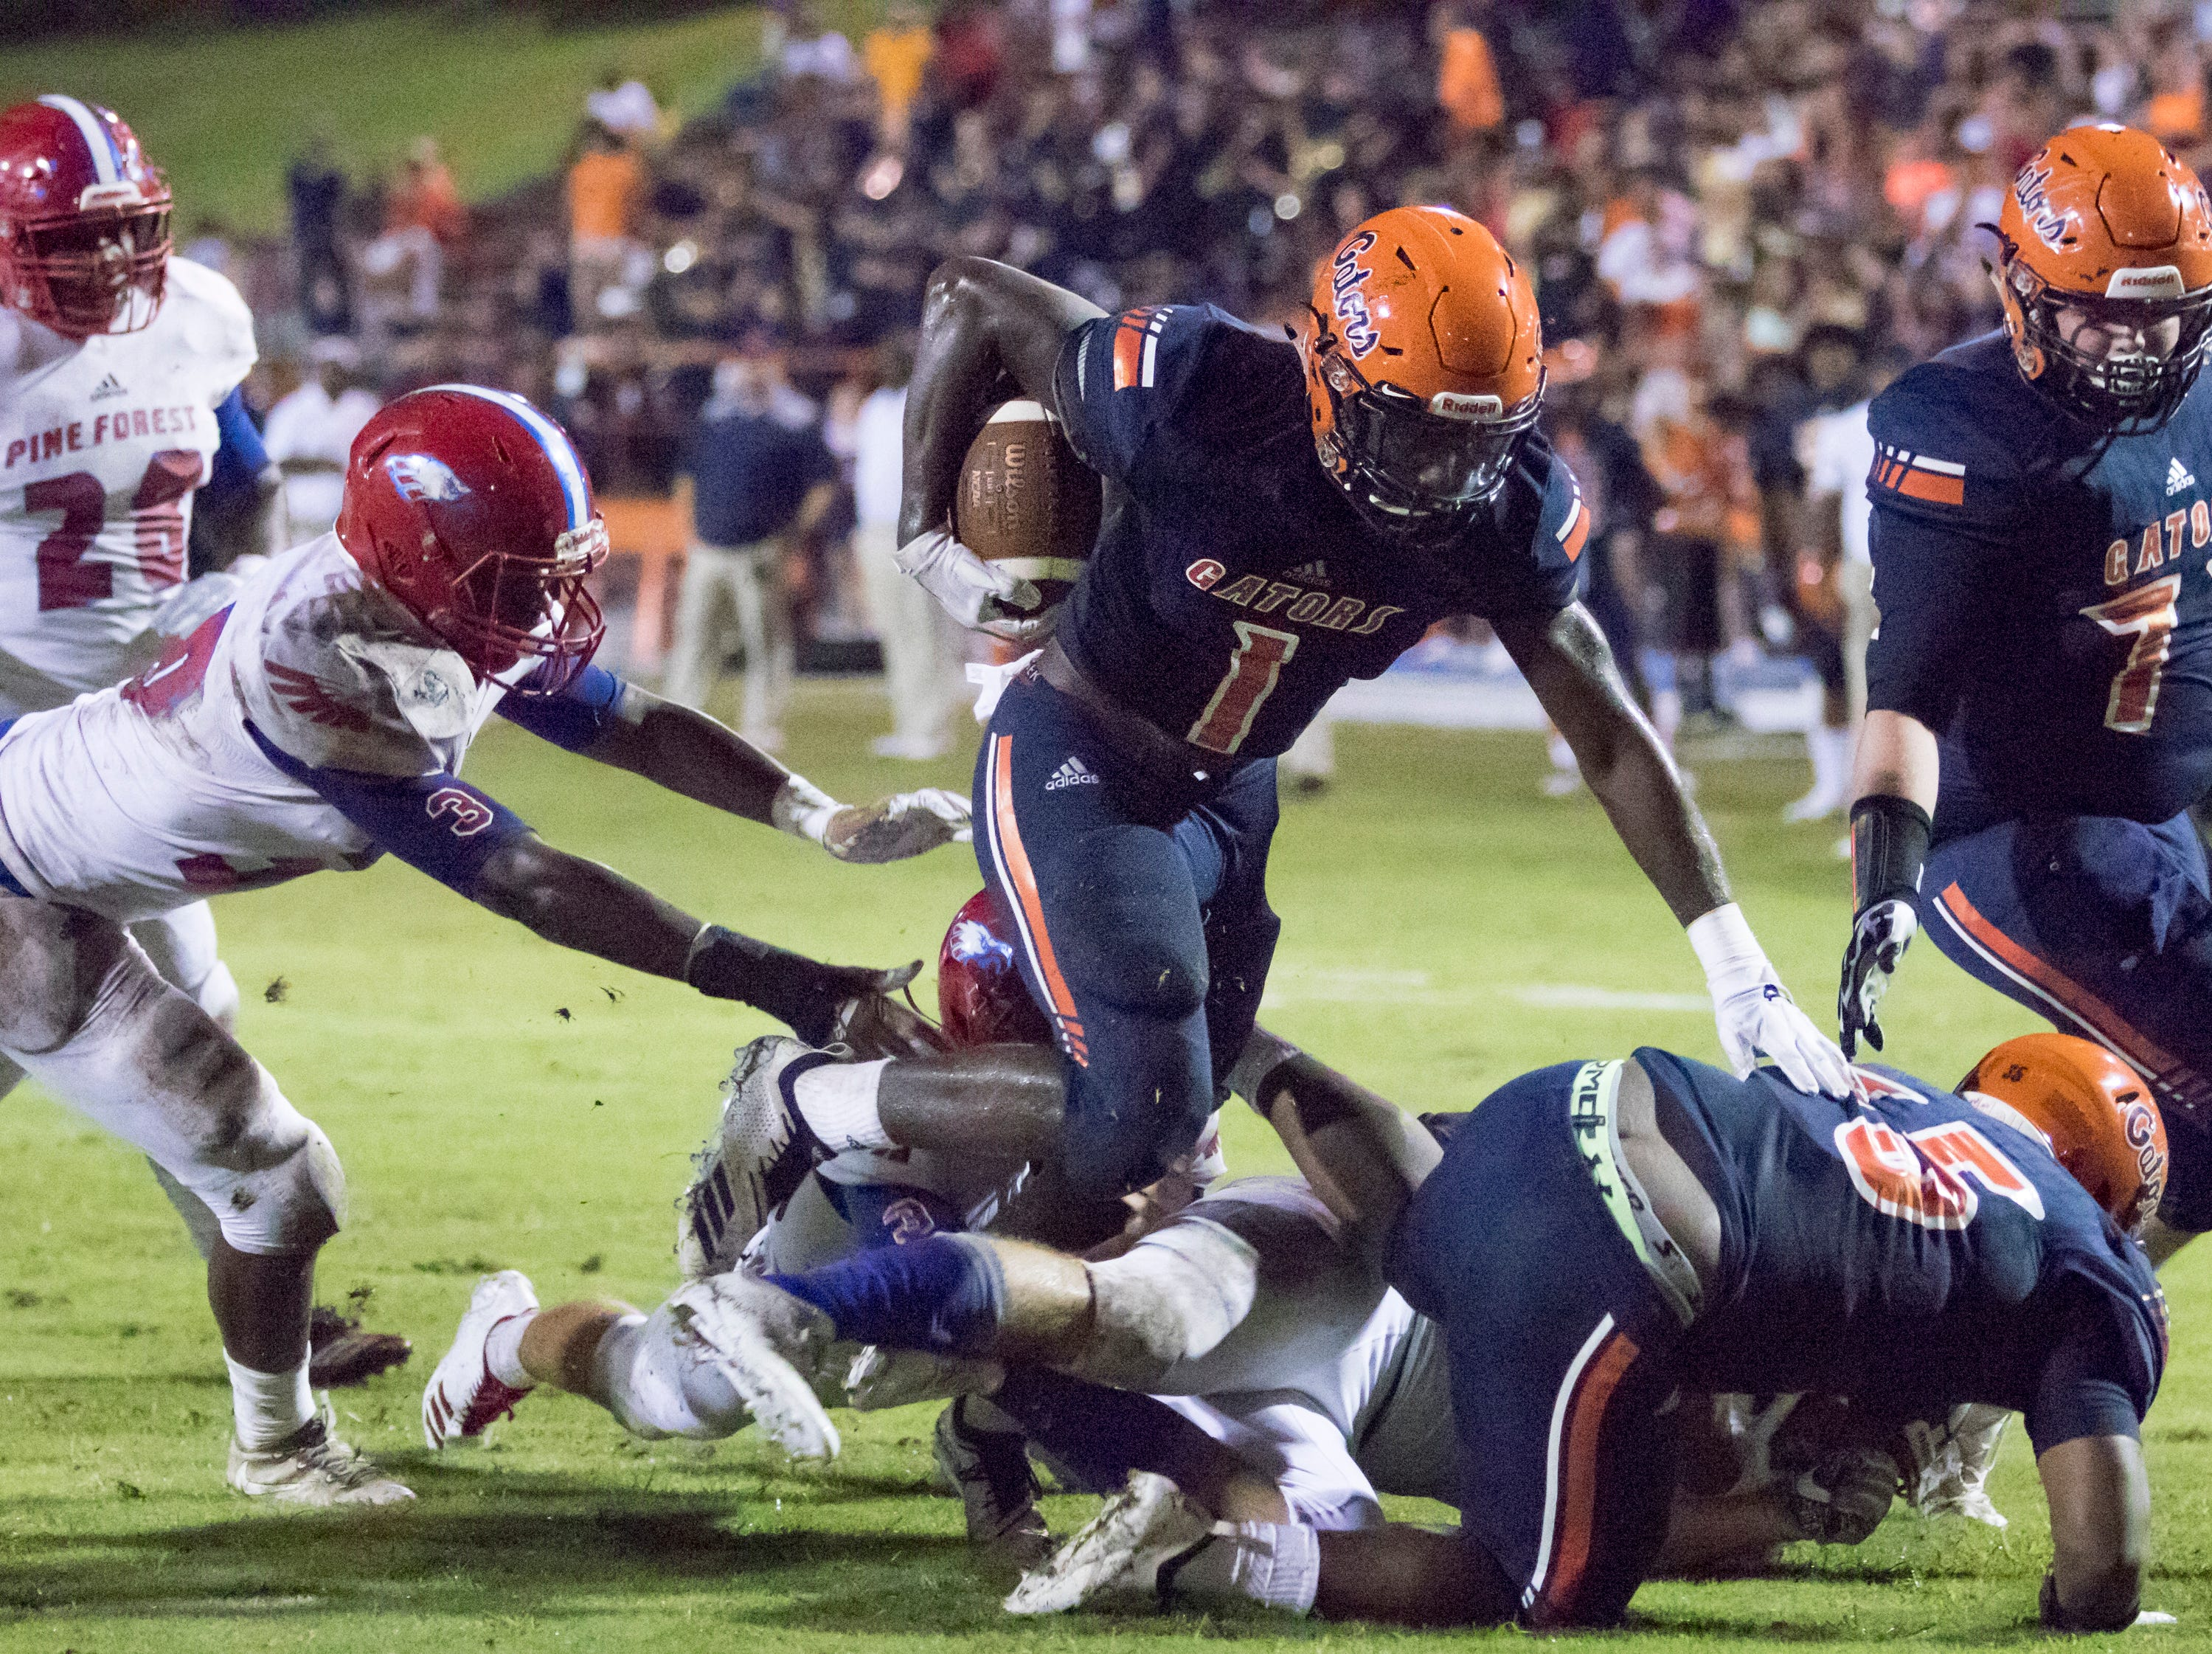 Frank Peasent (1) runs for a touchdown and a 14-7 lead during the Pine Forest vs Escambia football game at Escambia High School in Pensacola on Friday, September 28, 2018.